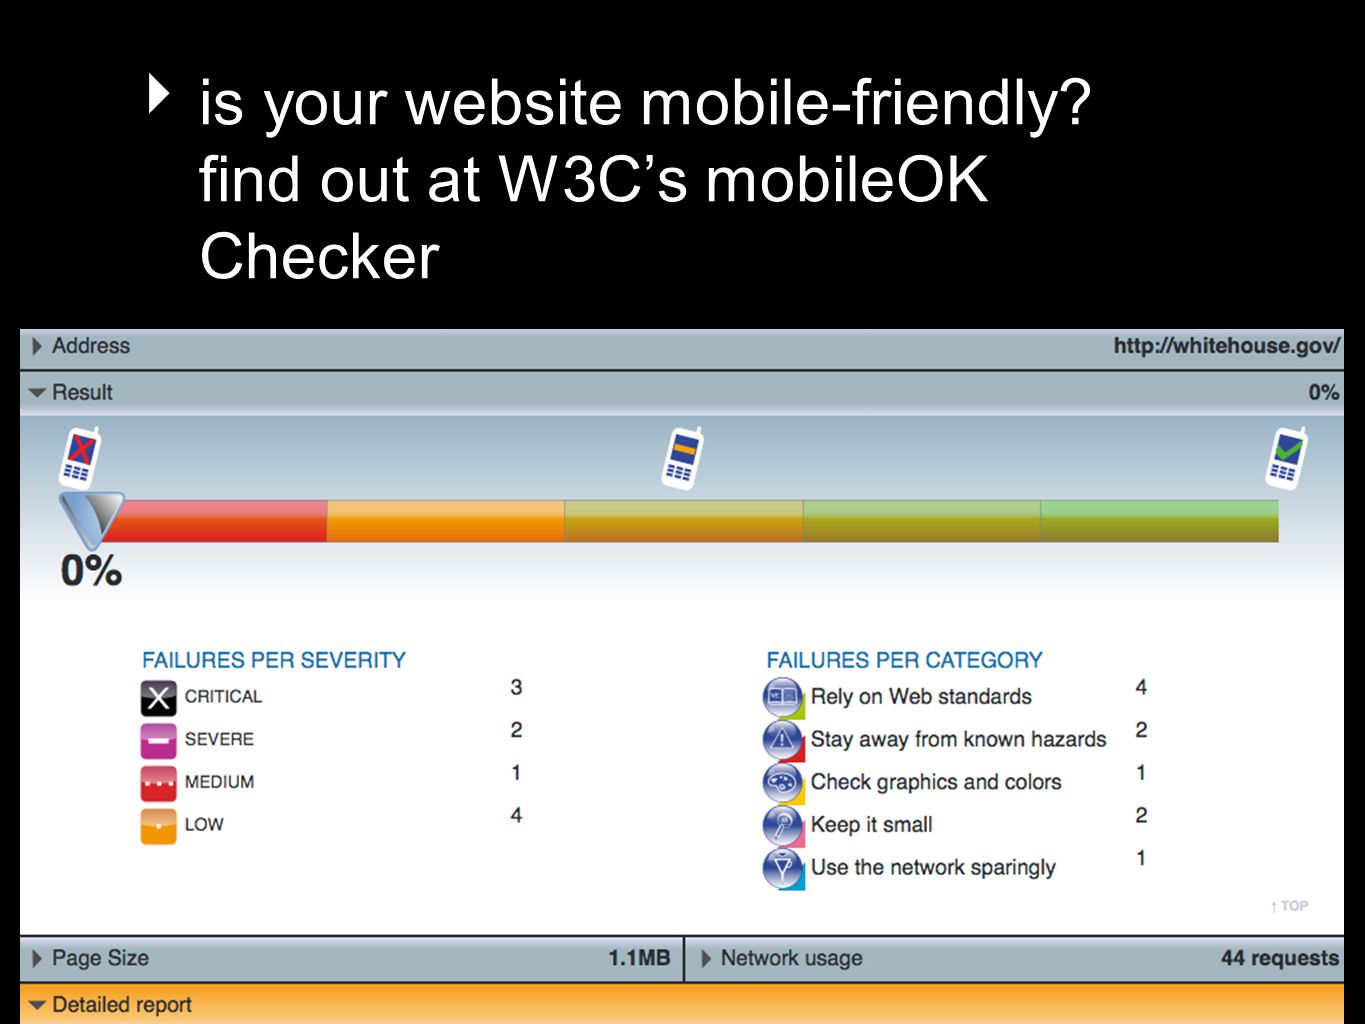 is your website mobile-friendly find out at W3Cs mobileOK Checker